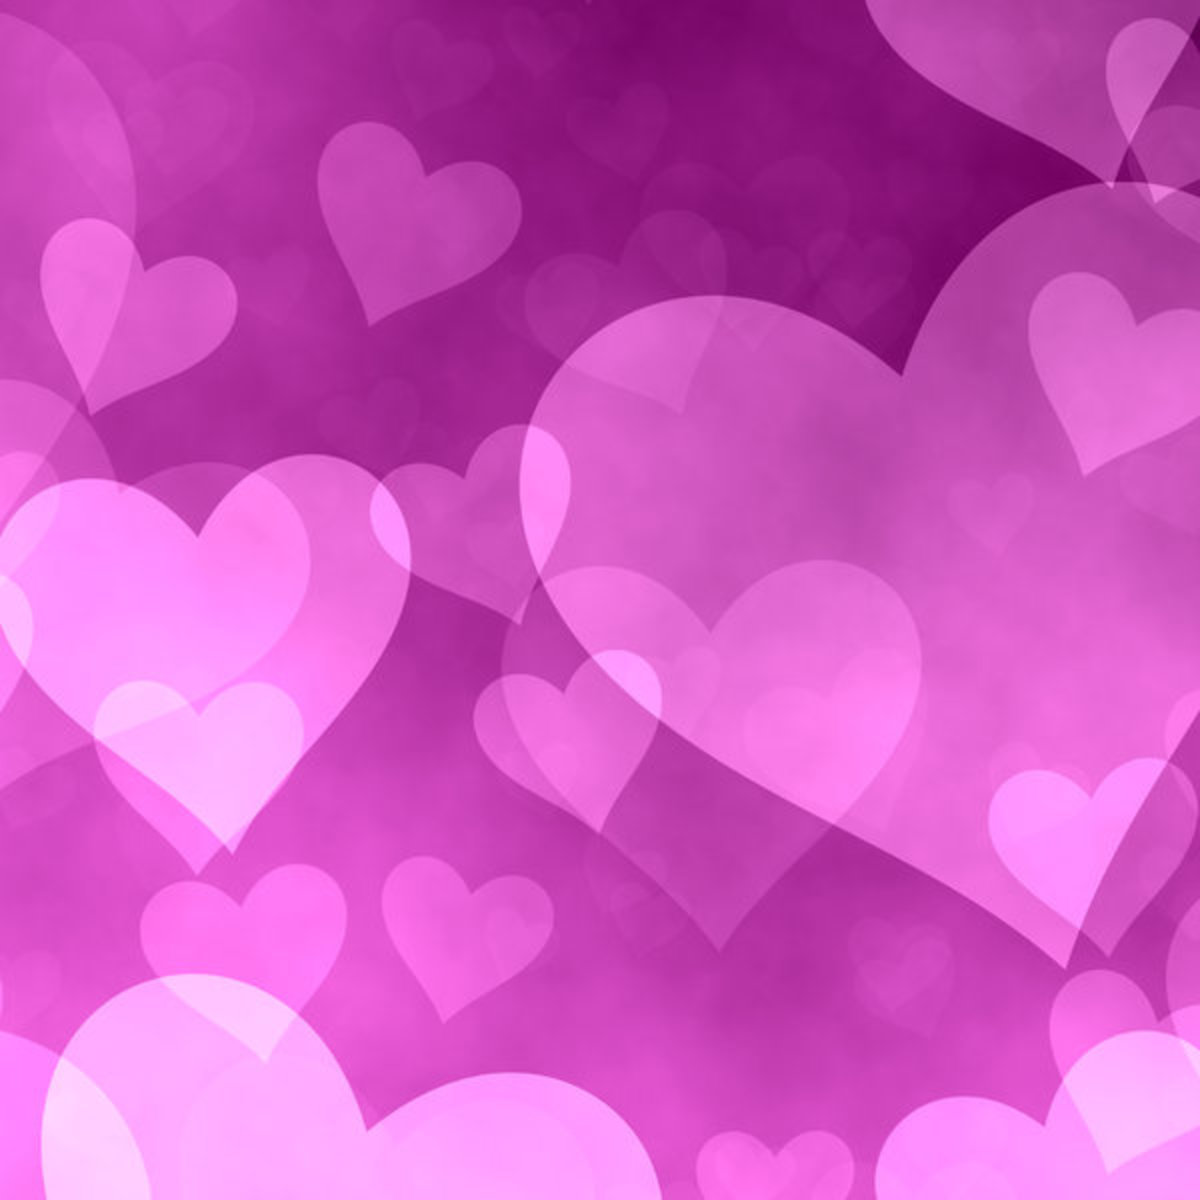 Lavender Heart Wallpaper